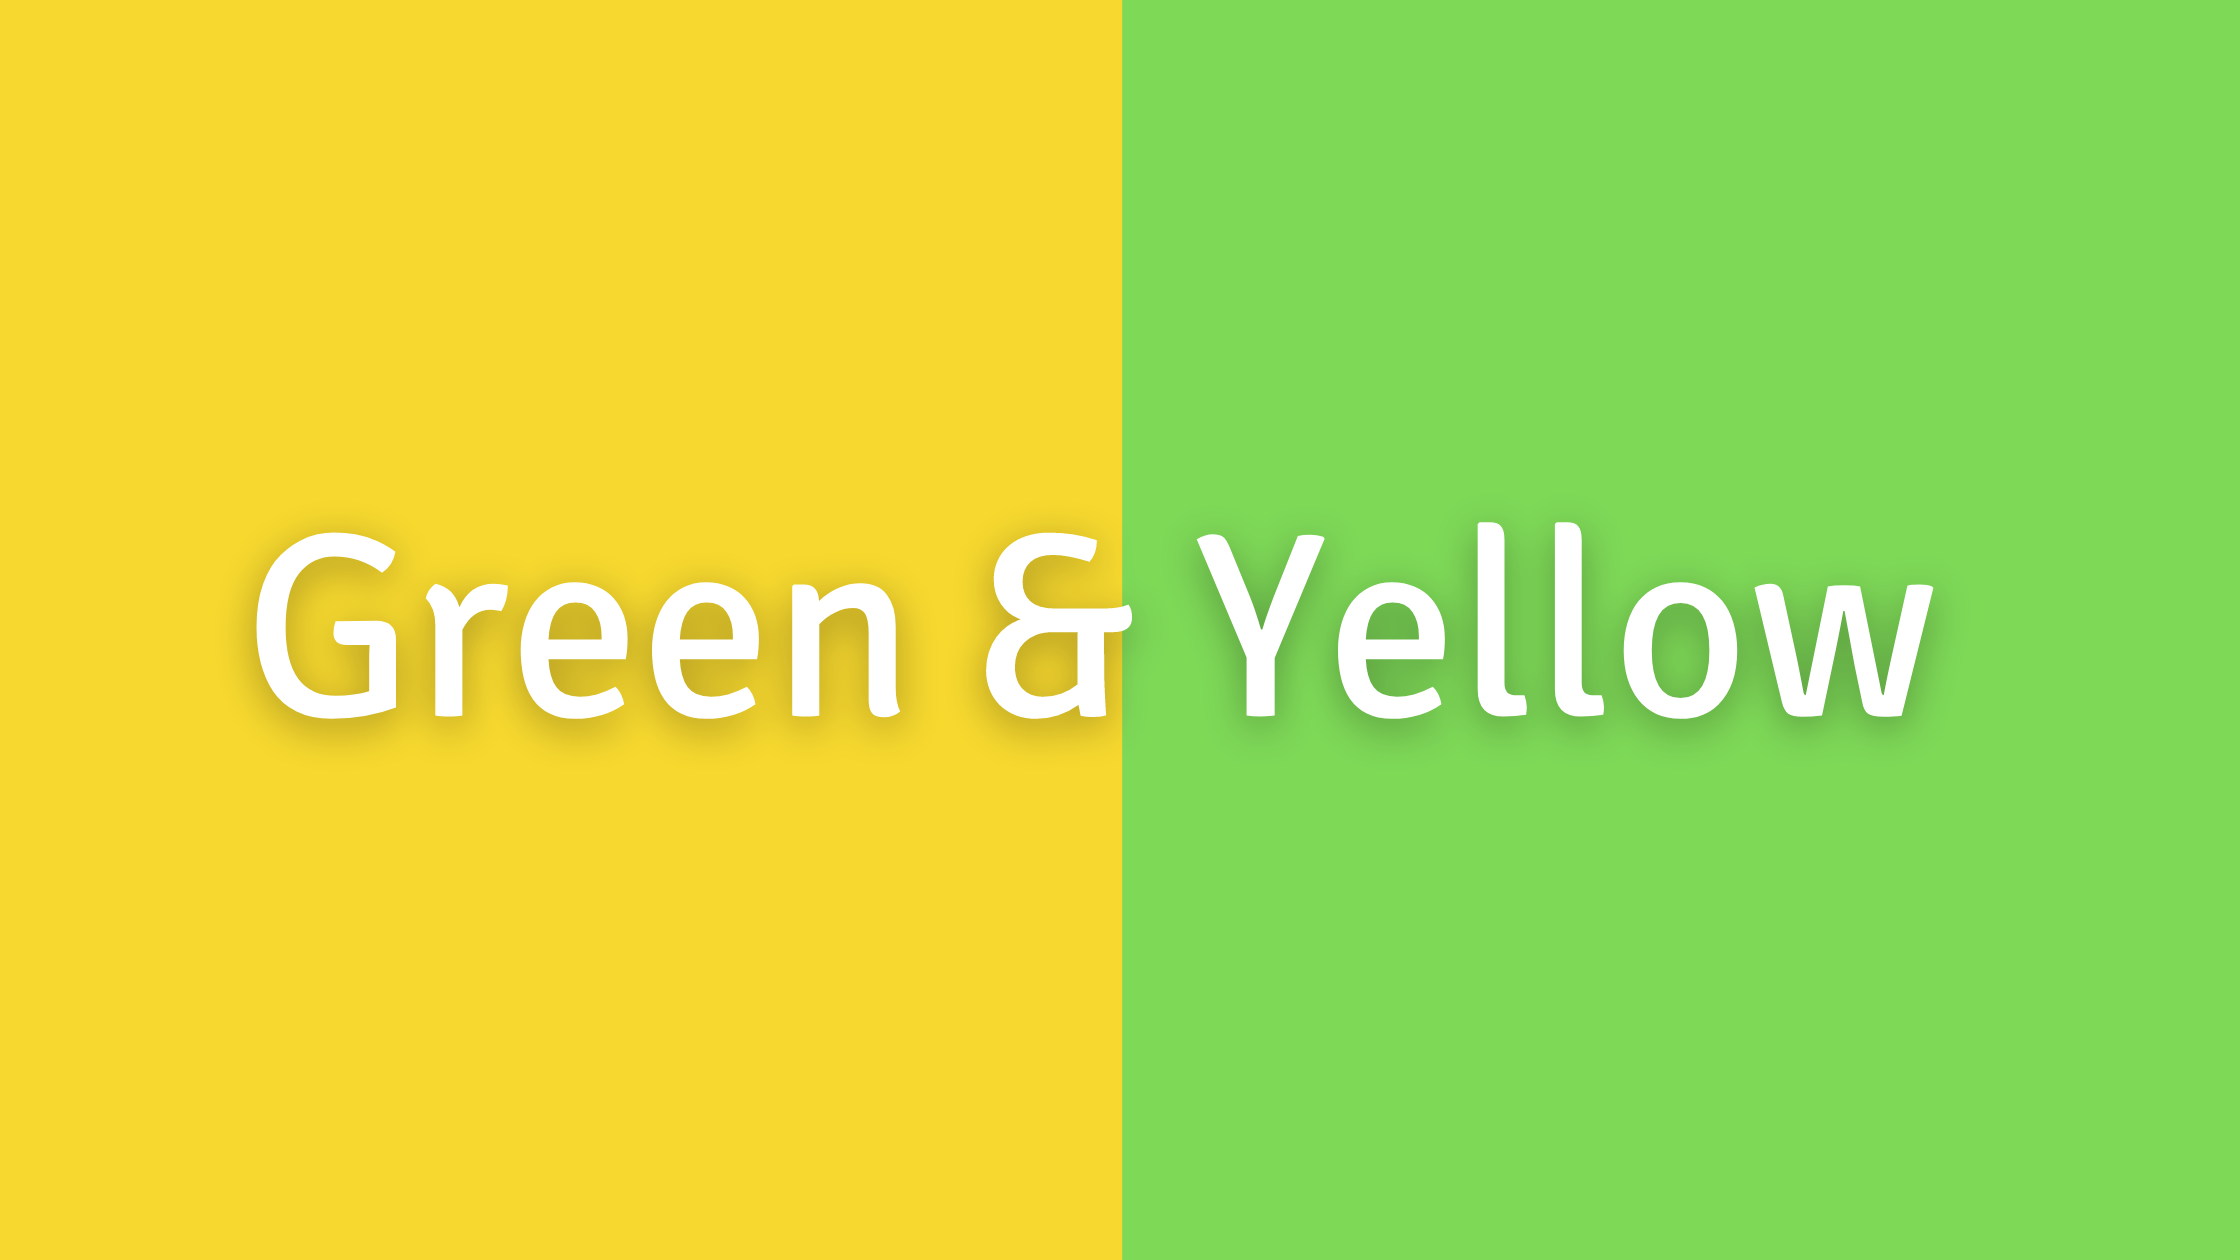 Green, Yellow, and Orange Color Combos to Avoid: Green and Yellow